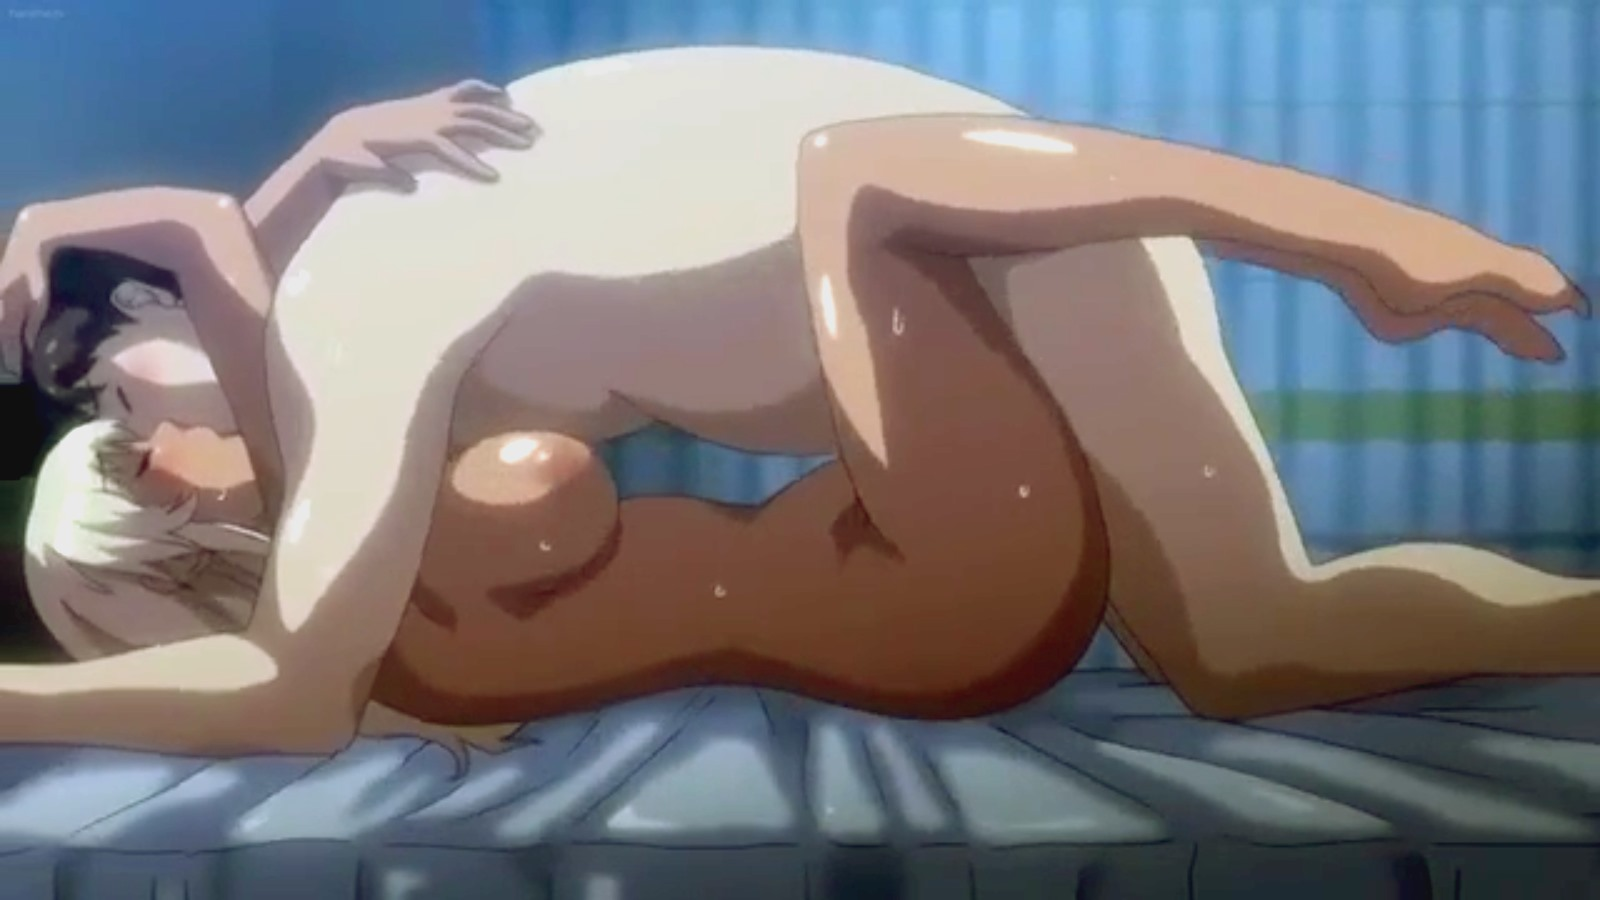 Adorable Porno En Vk baka dakedo 2 anime porn | watchanime.video